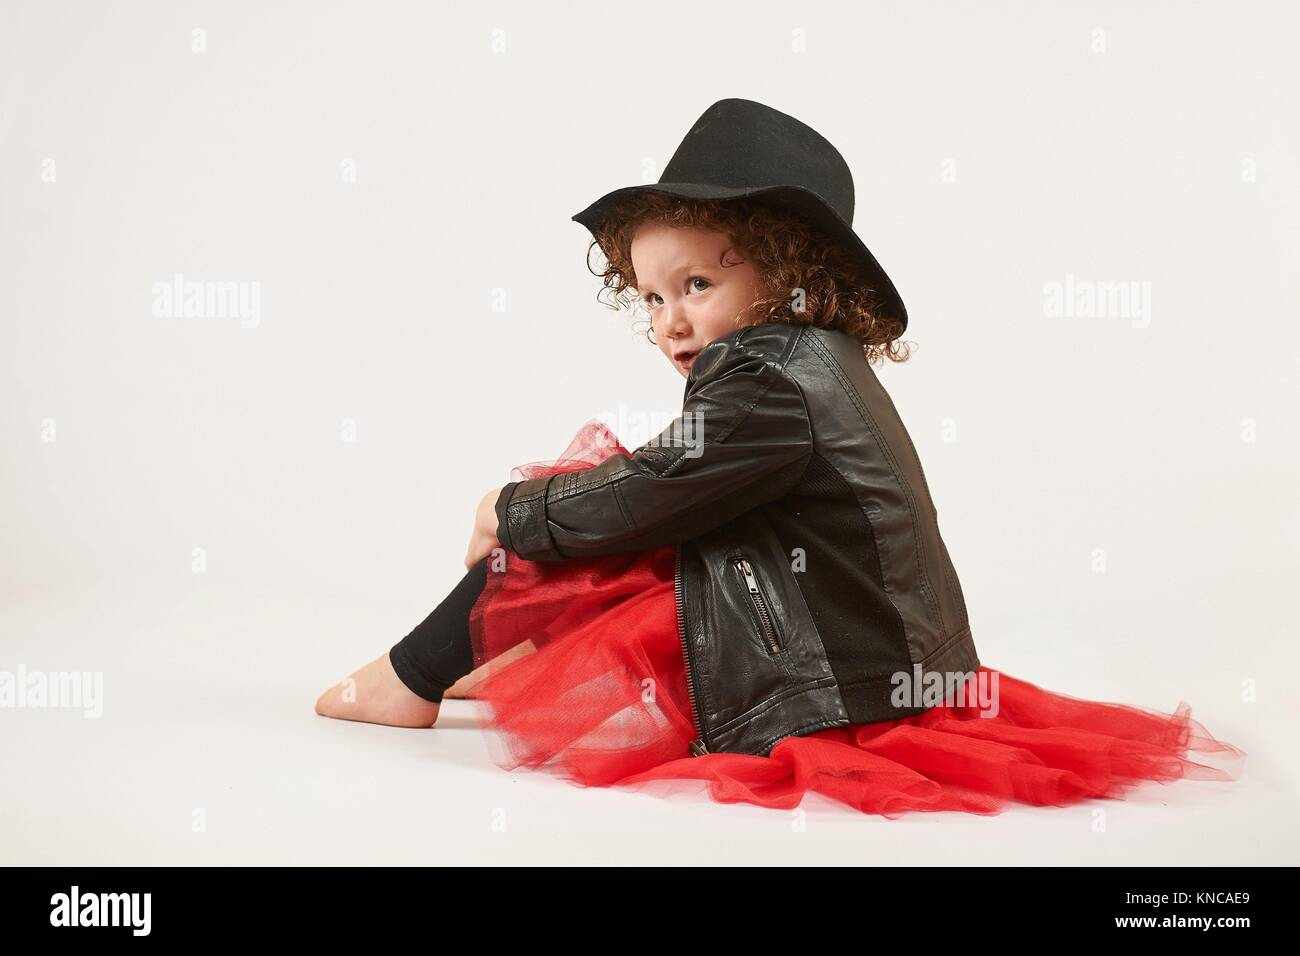 04e4a8206e275 Little girl with black hat sitting and pouting. side view. - Stock Image